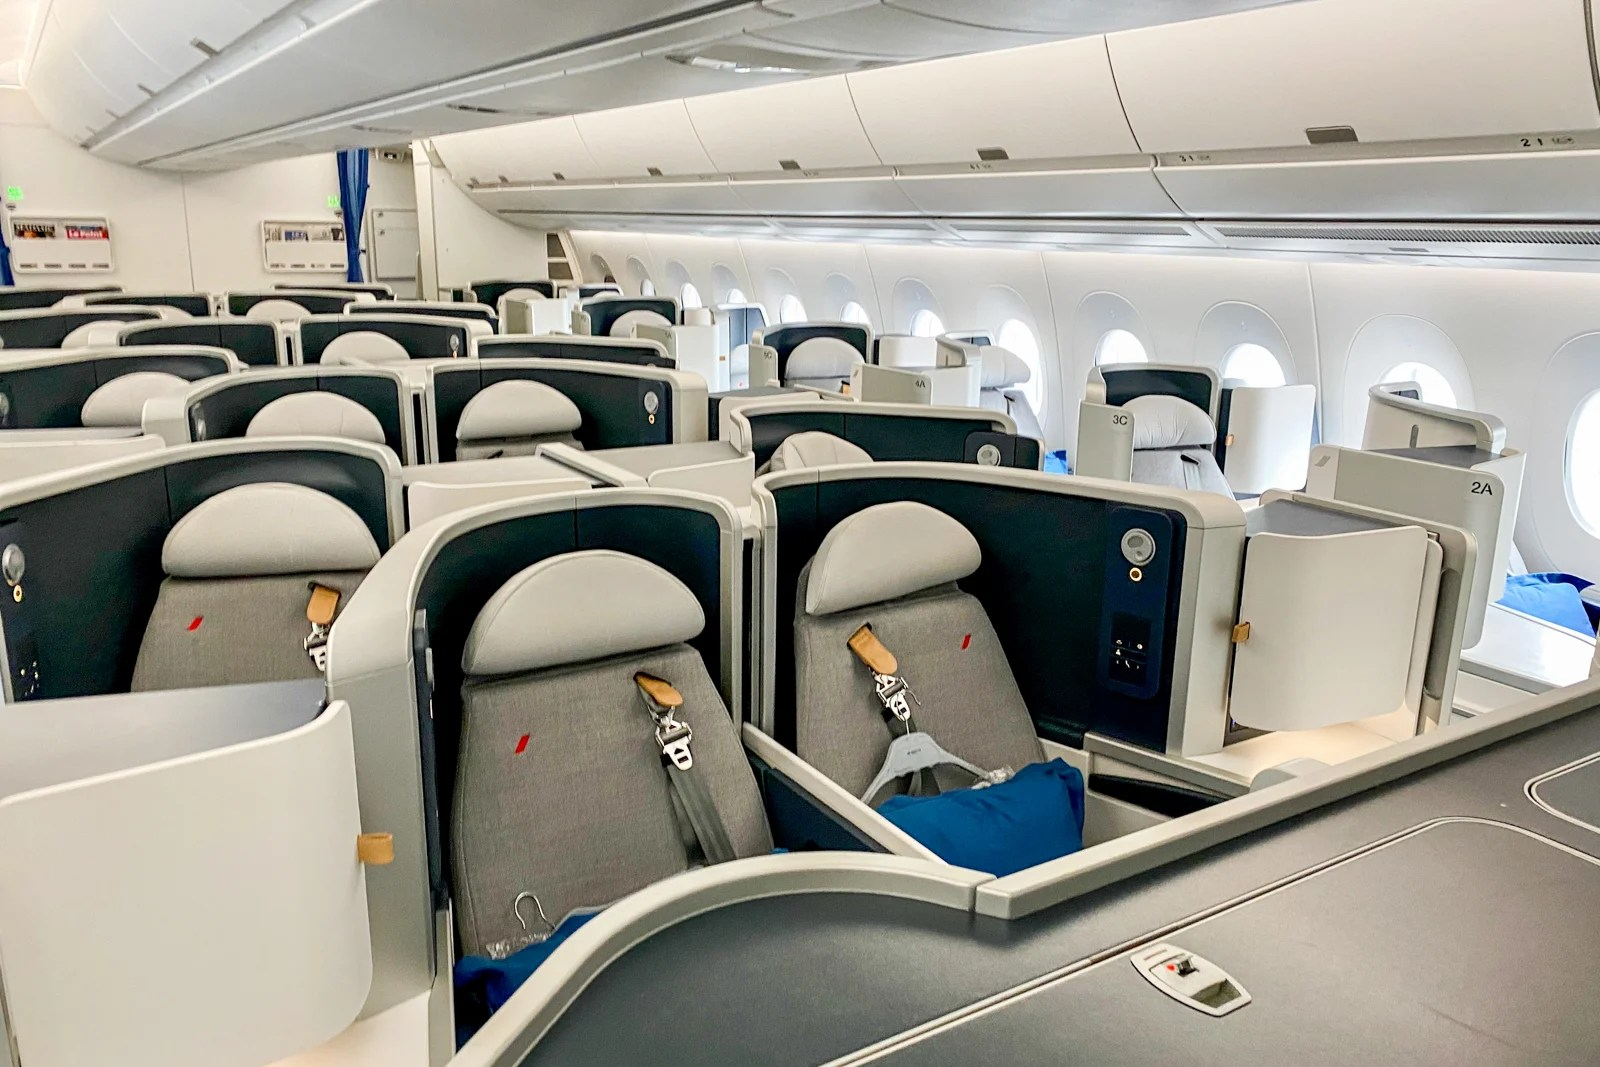 Great except the food: Review of Air France's A350 business class, Paris to Toronto